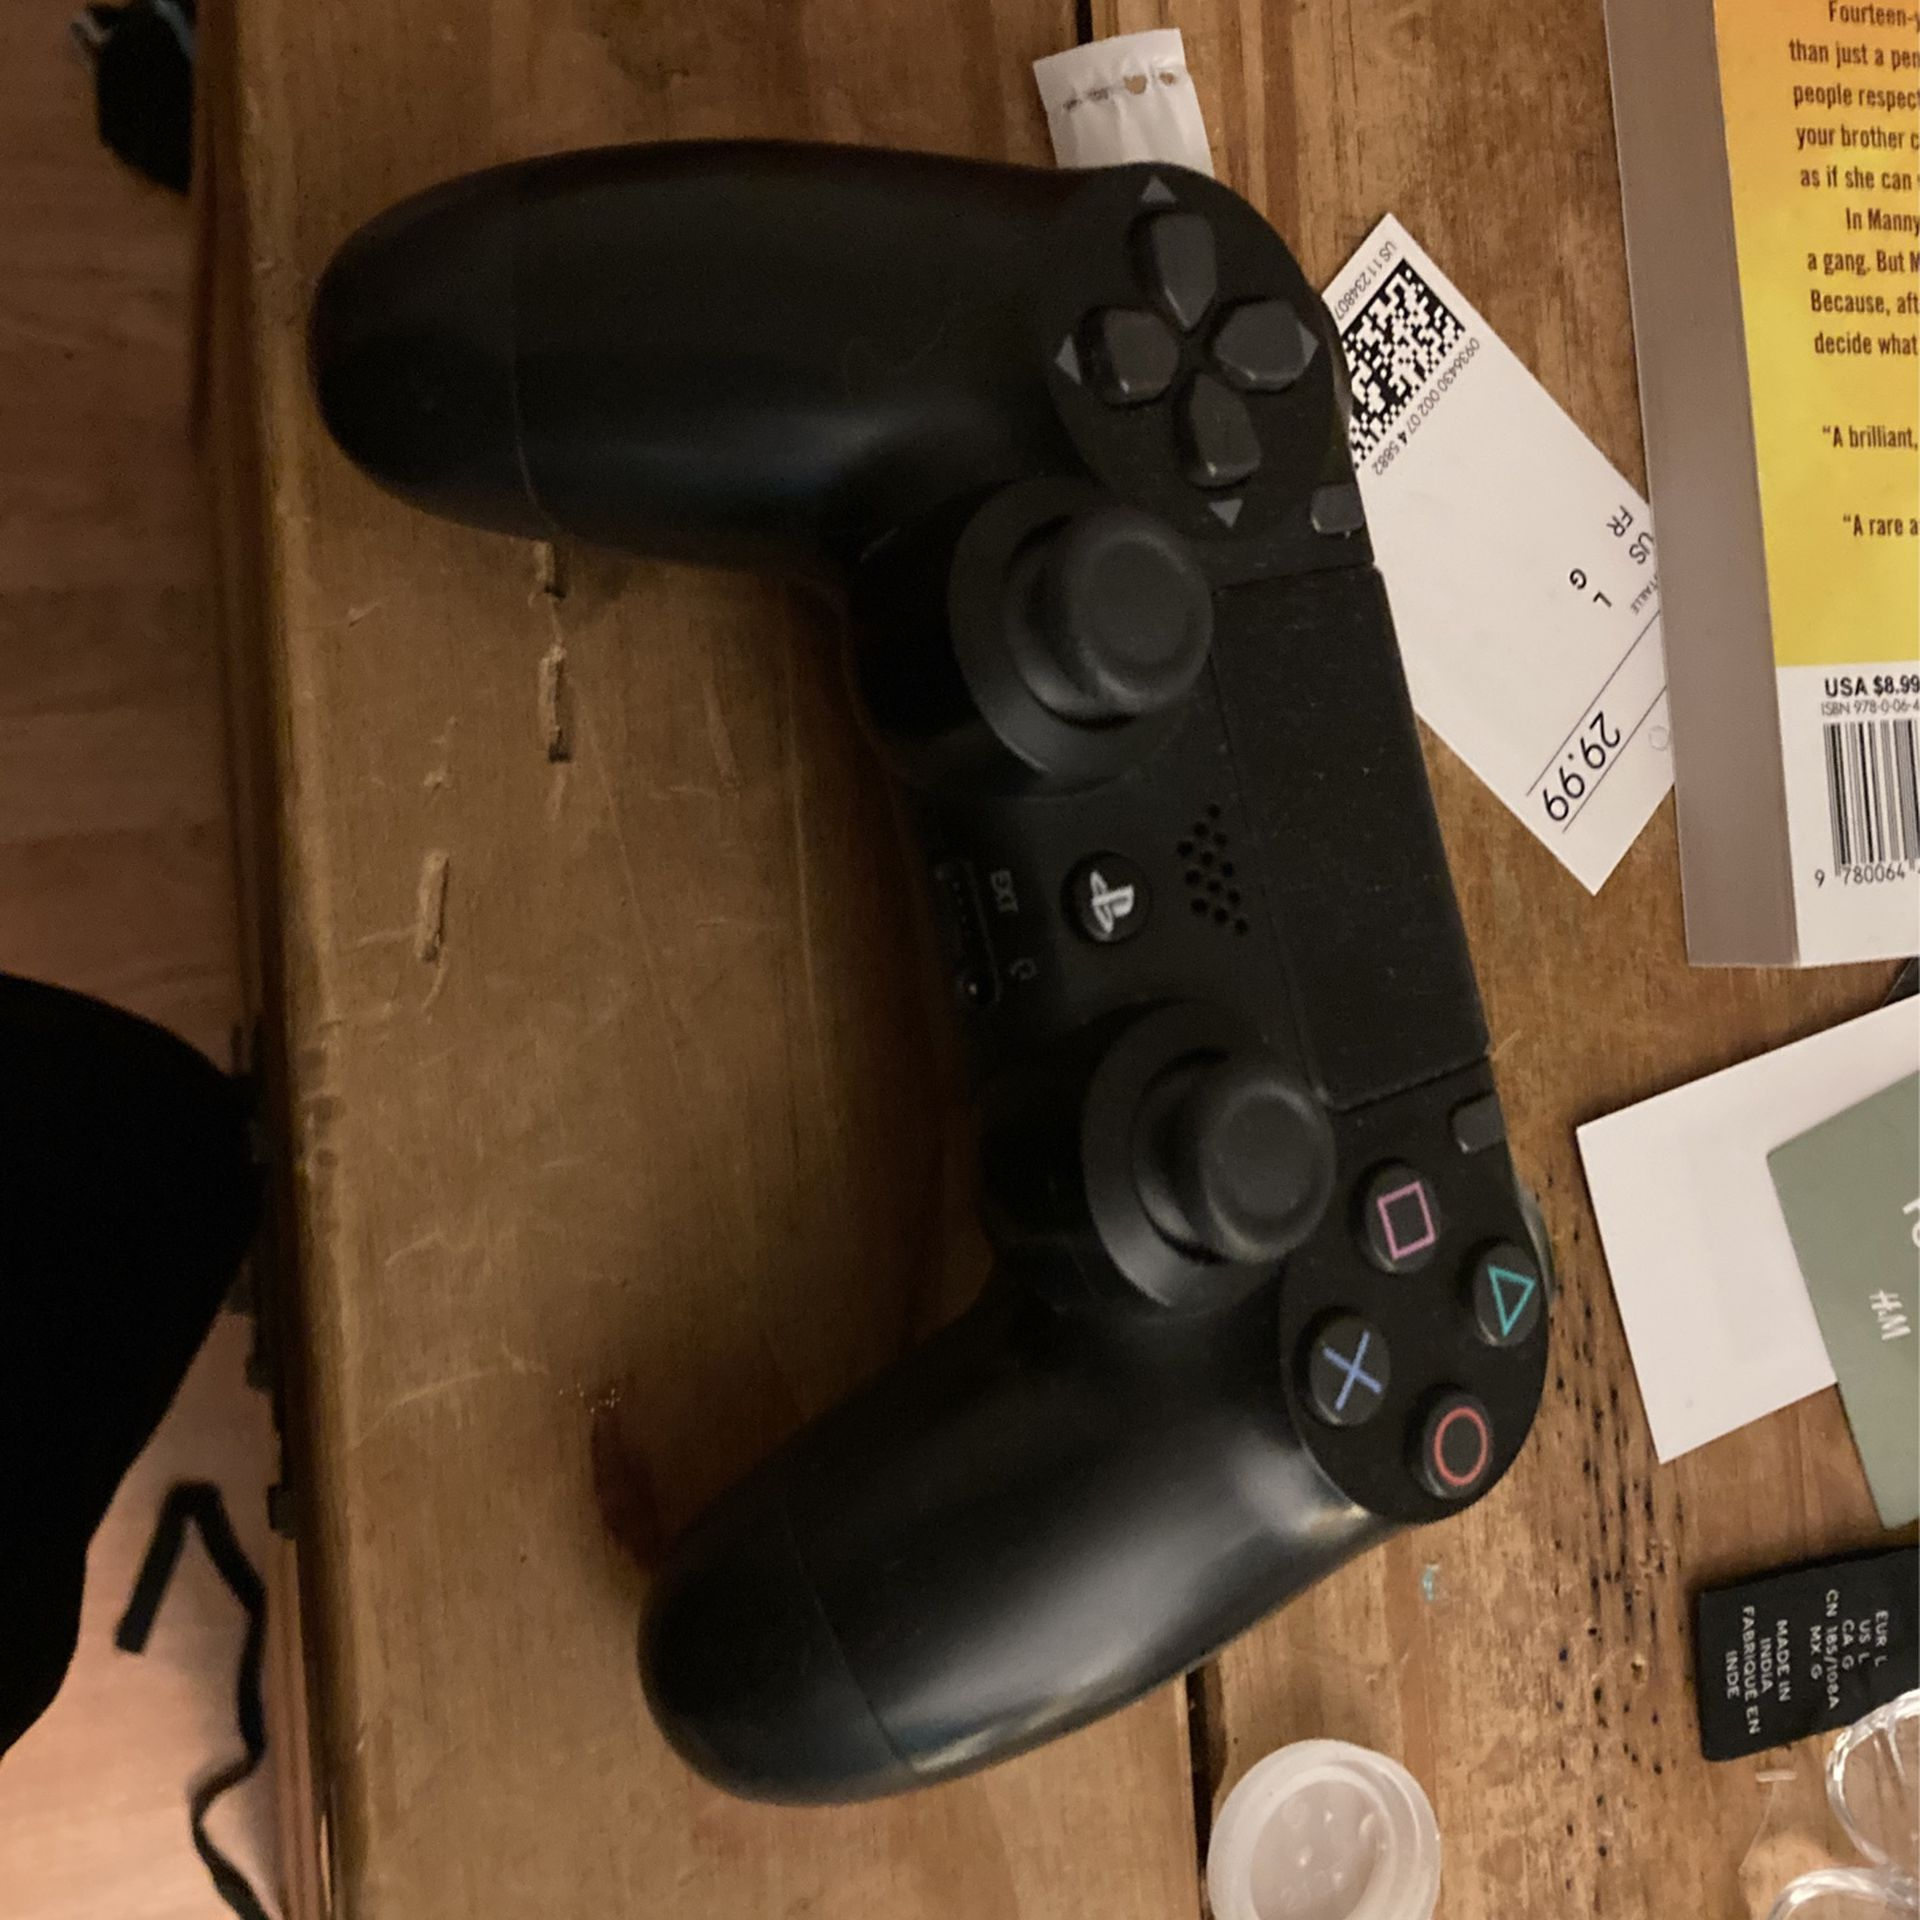 PS4 Controller.  For Proof It Stills Work Add Me On Snapchat And U Will See Videos Of The Controller In Action